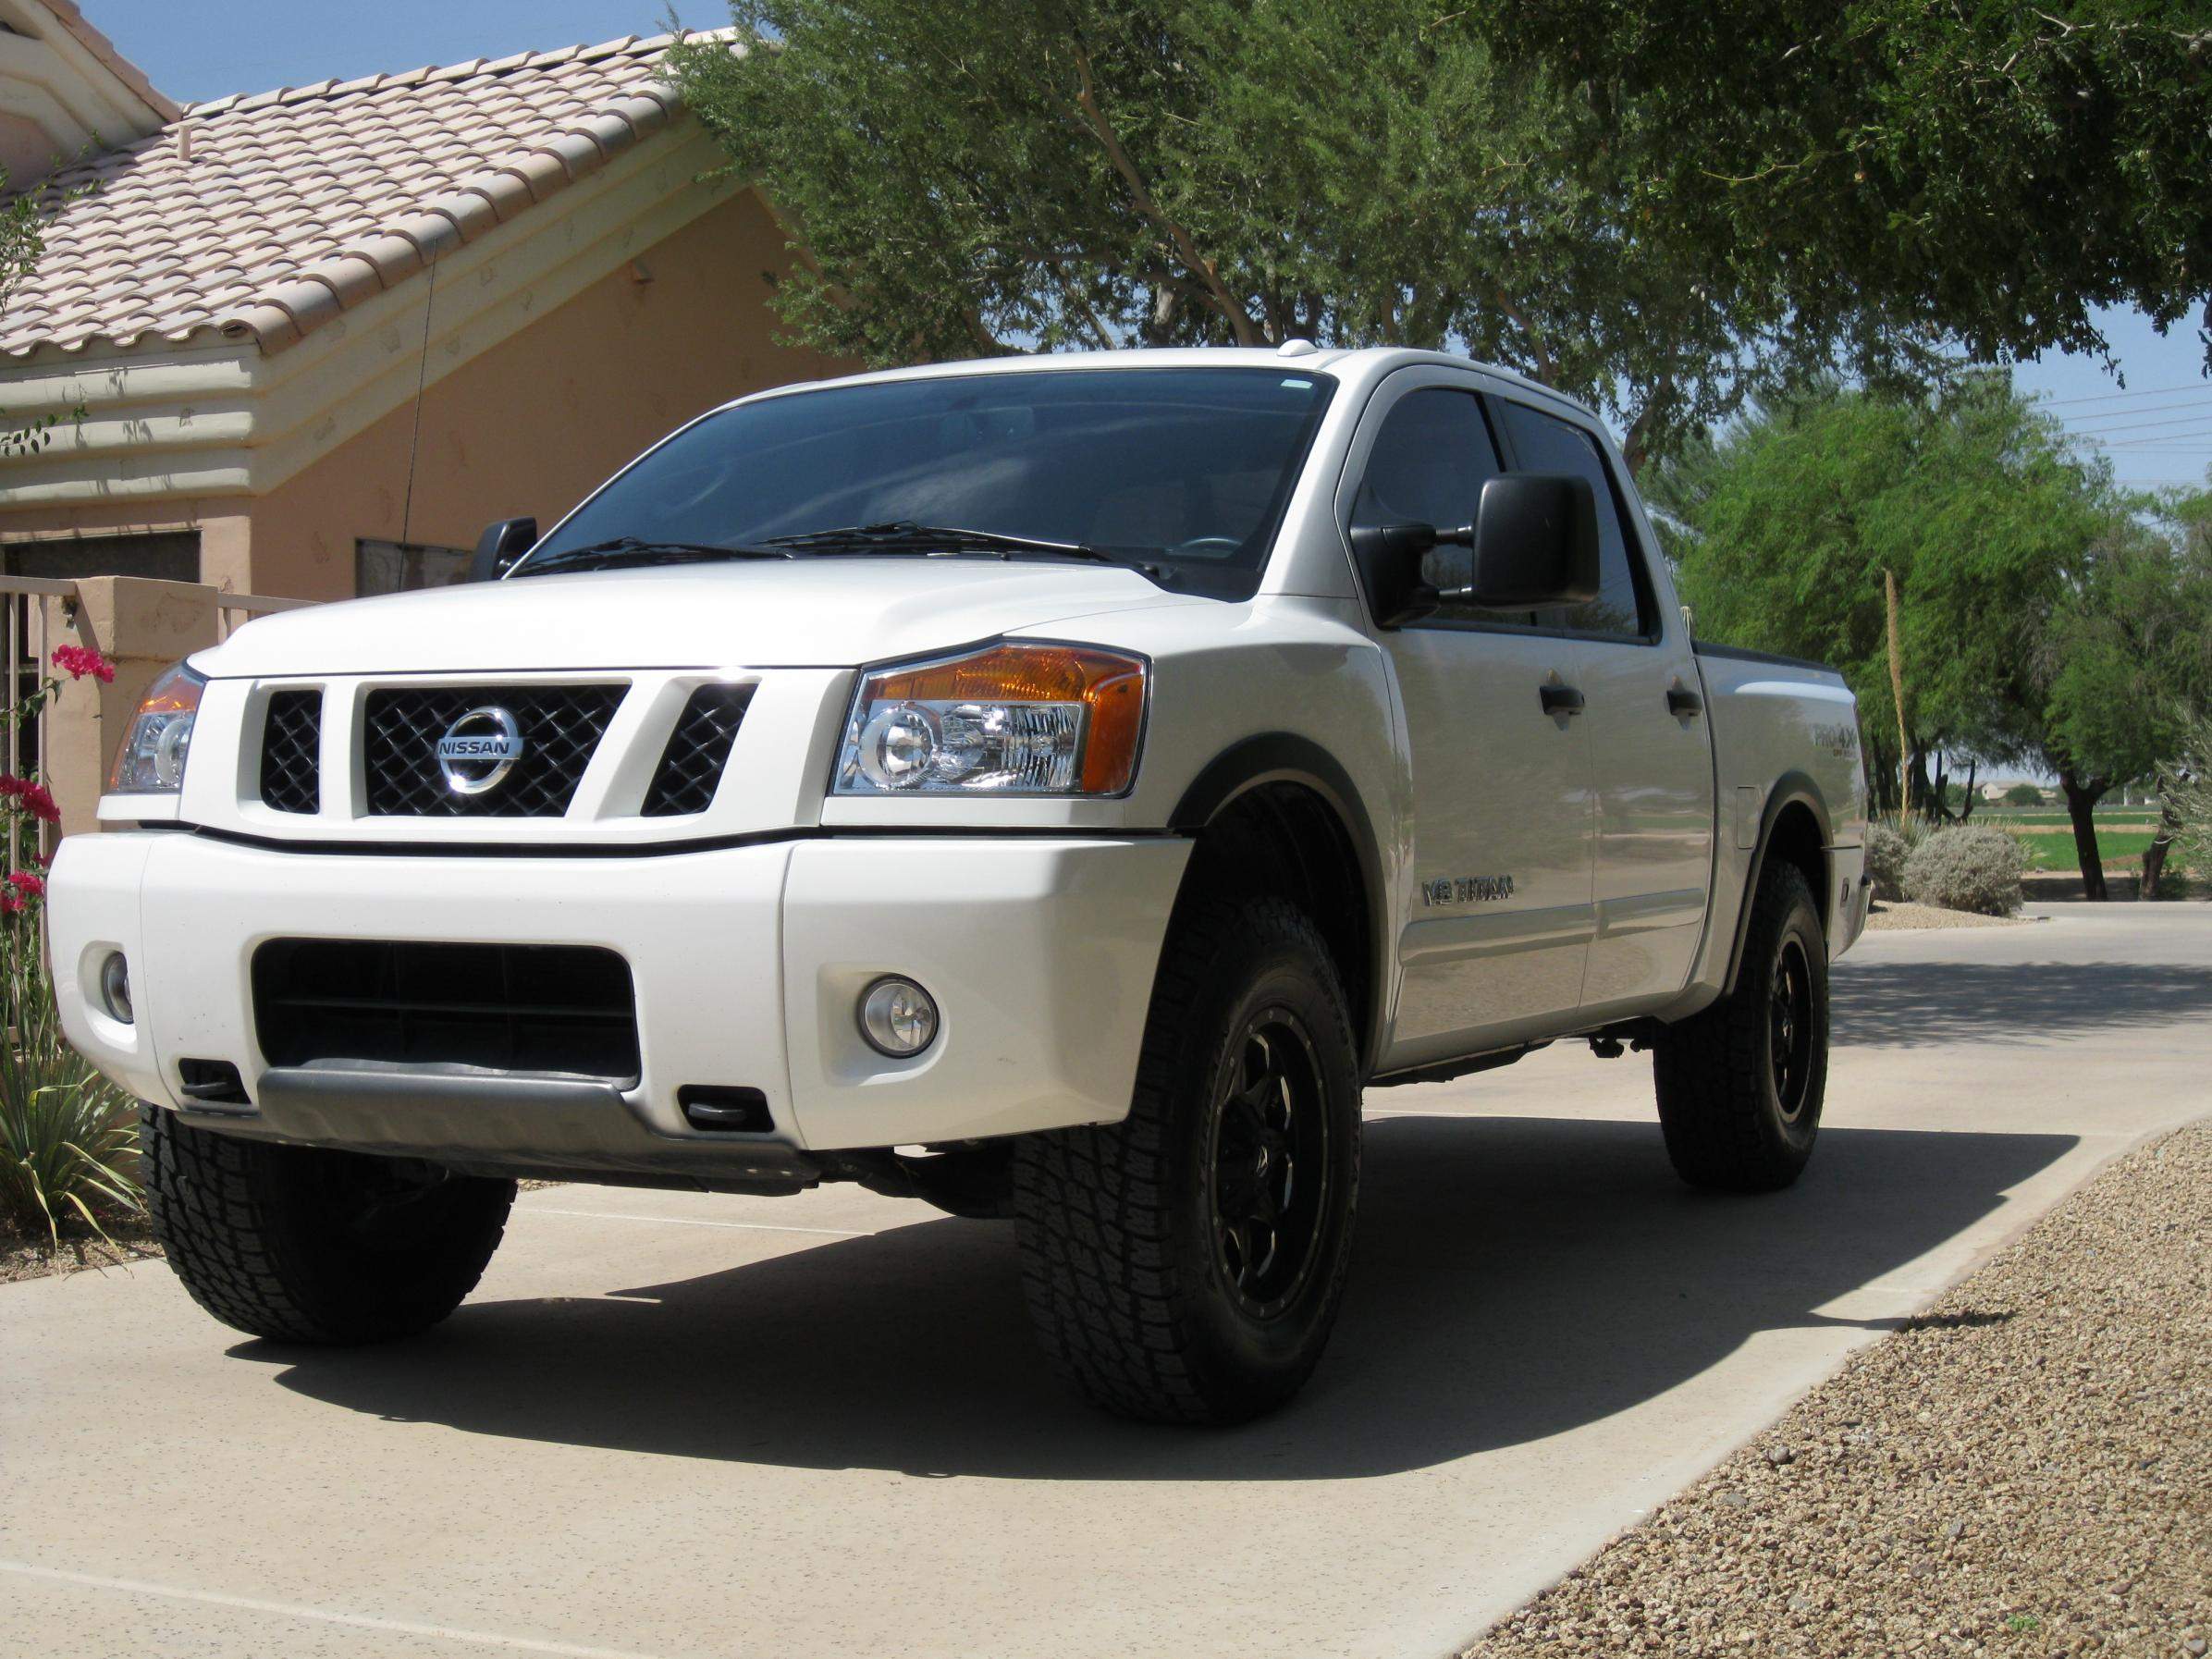 pic of titan with 2 39 39 or 3 39 39 leveling kit nissan titan forum. Black Bedroom Furniture Sets. Home Design Ideas